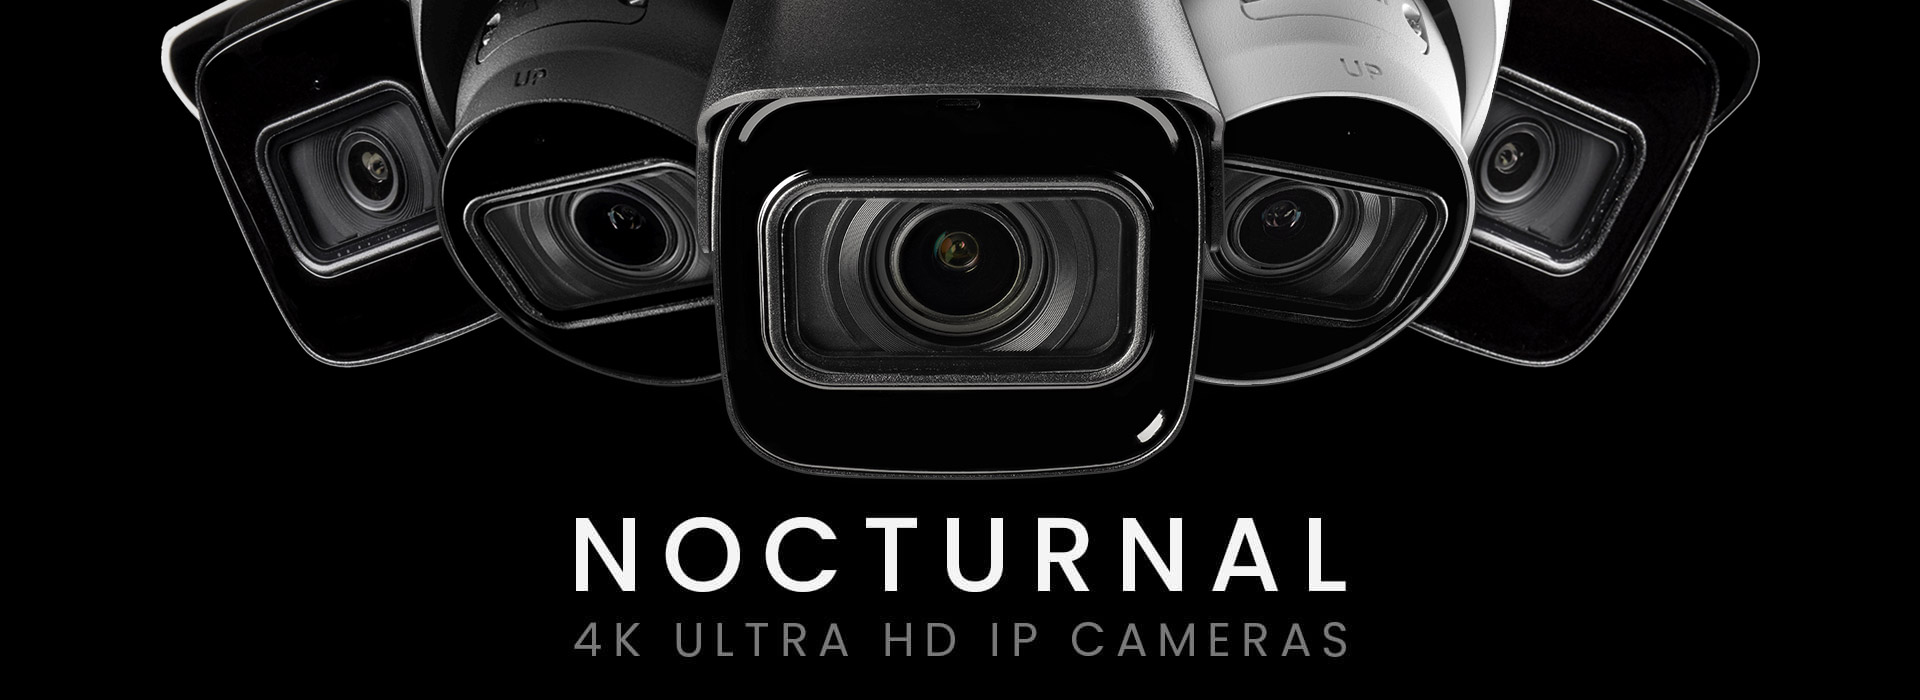 Nocturnal 4K Ultra HD Security Cameras from Lorex